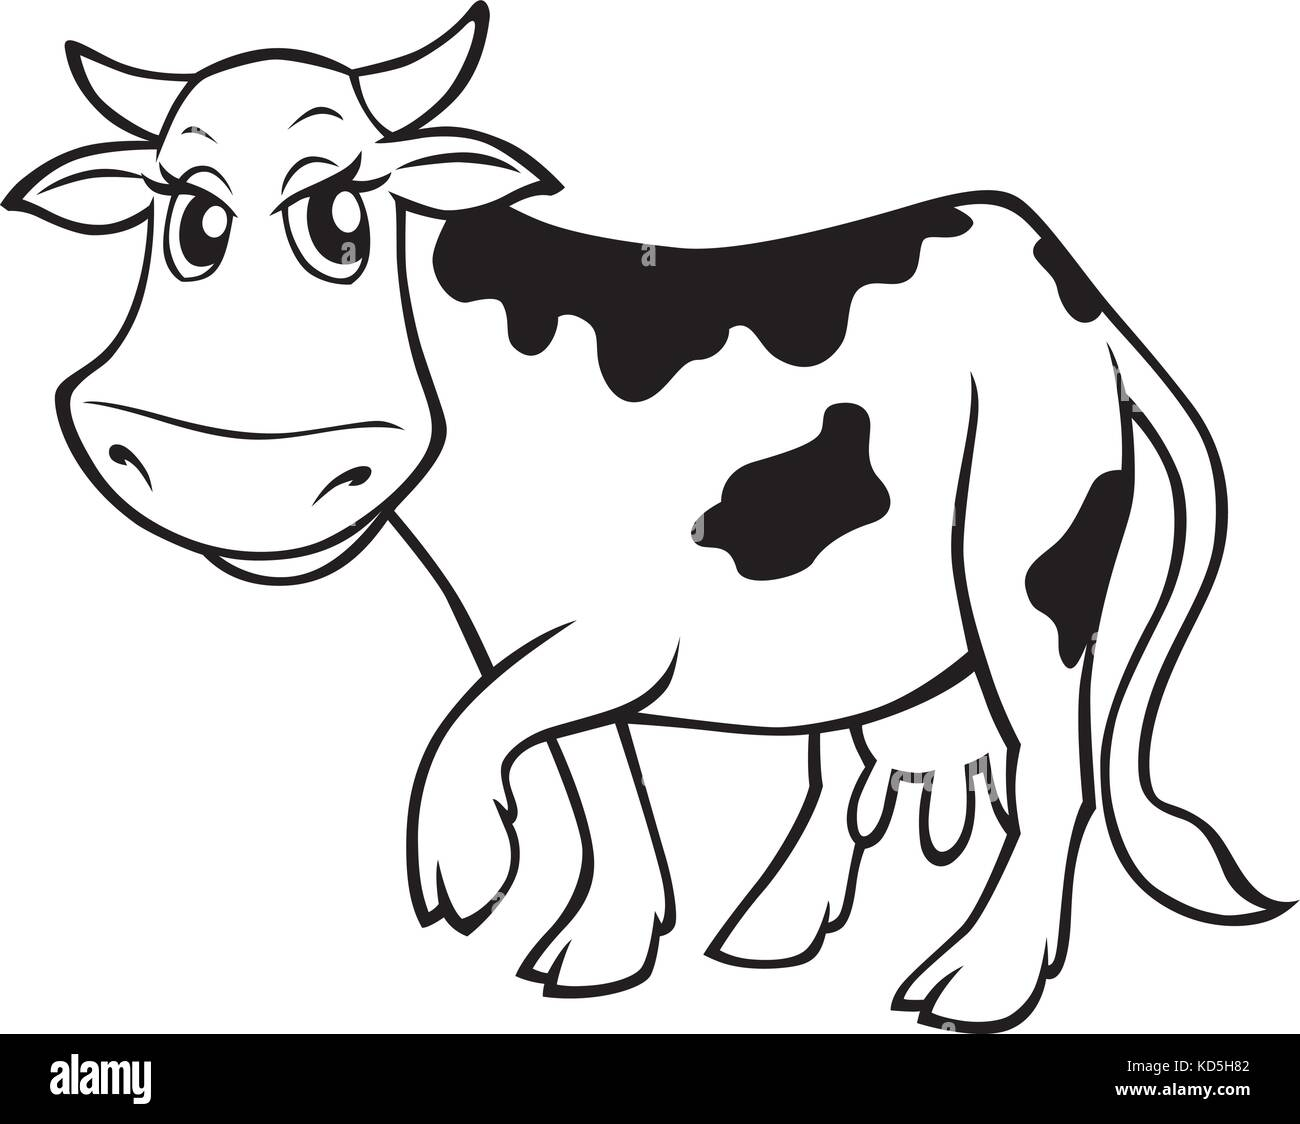 Vector cartoon black and white drawing of a cute cow